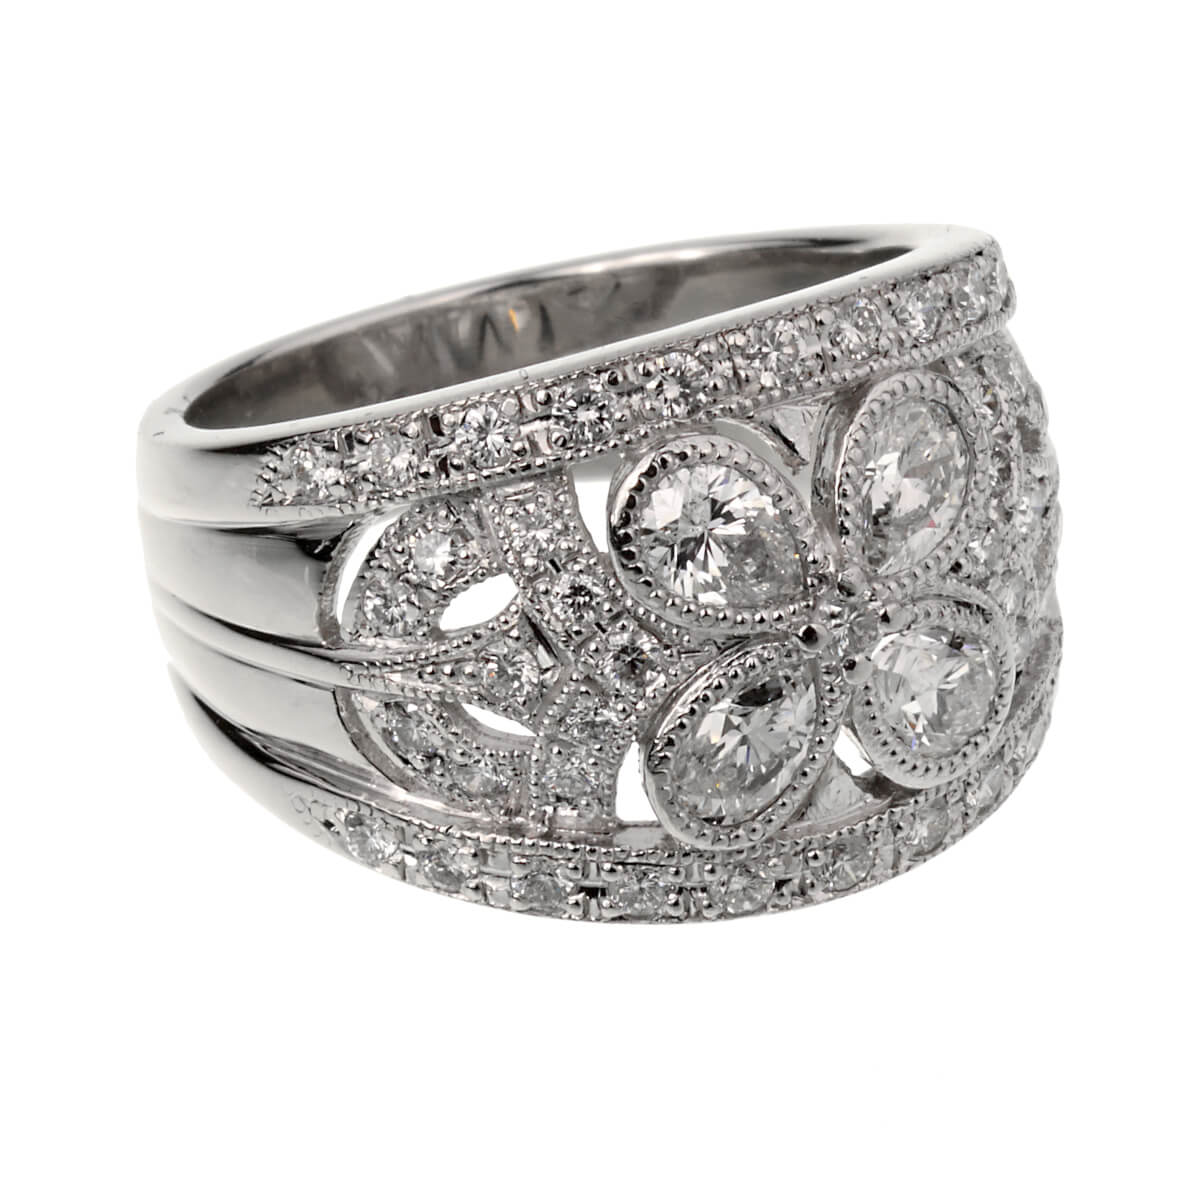 Vintage Platinum Diamond Cocktail Ring